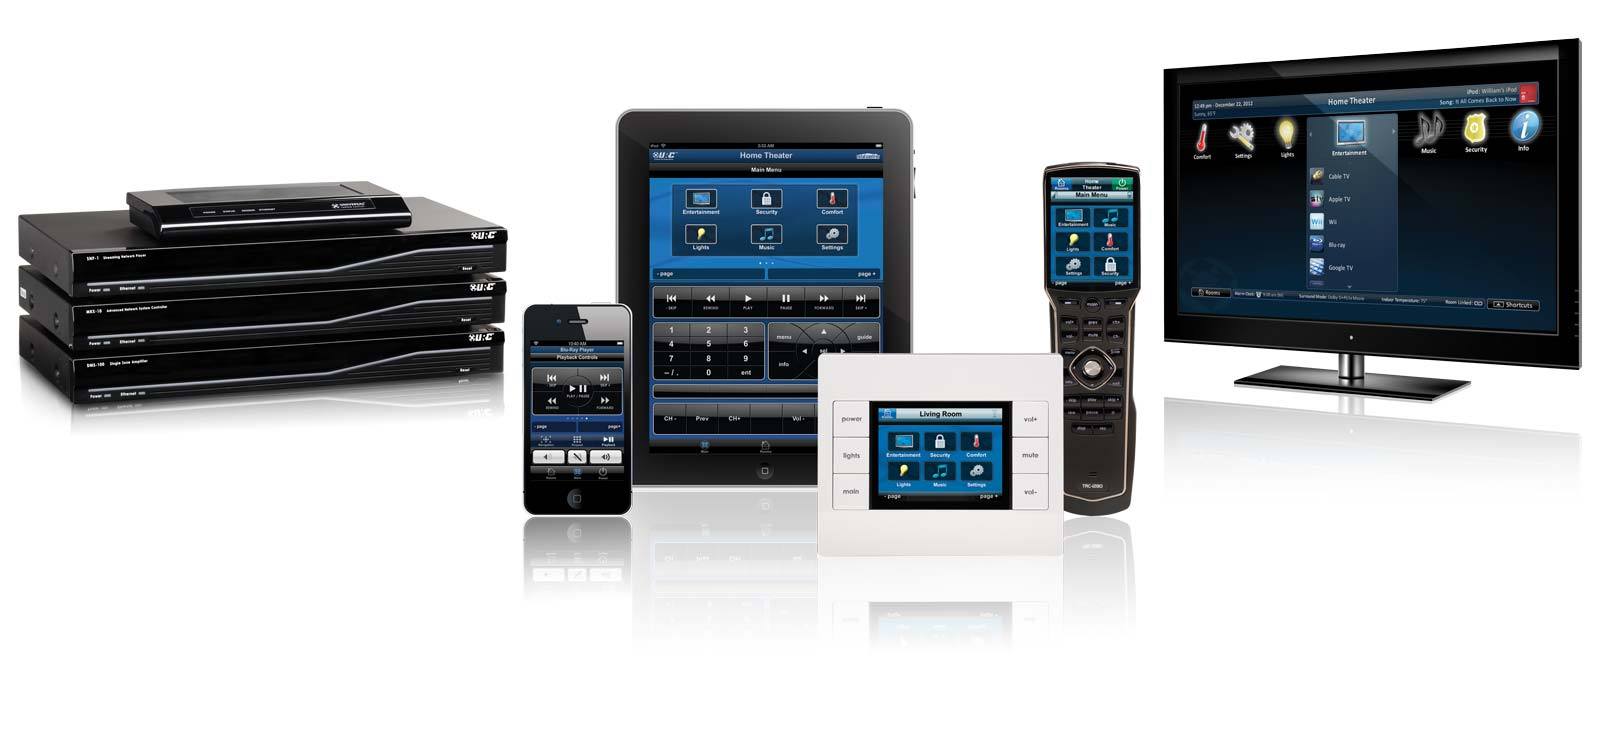 Av installation specialist based in glasgow scotland for Total home control